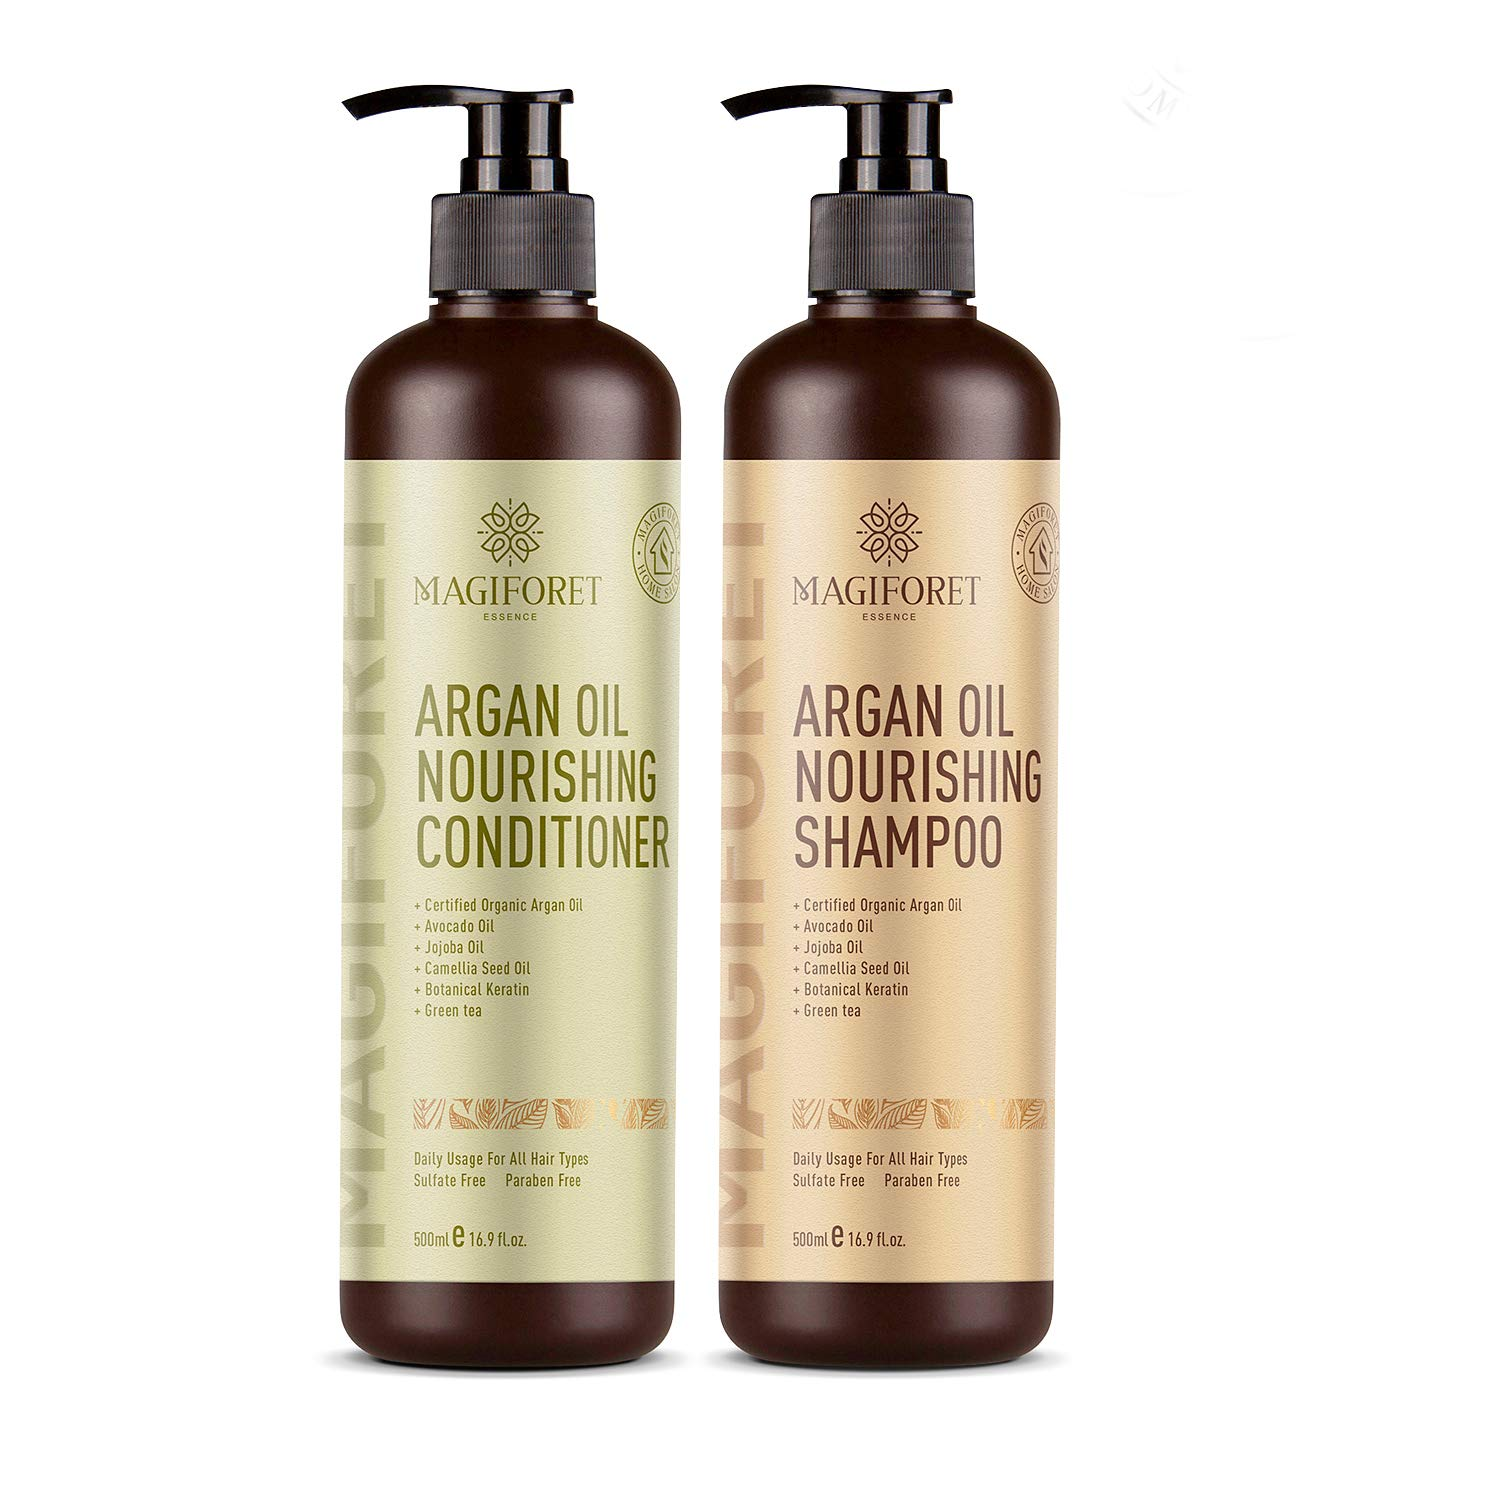 Magiforet Argan Oil Shampoo and Conditioner Set